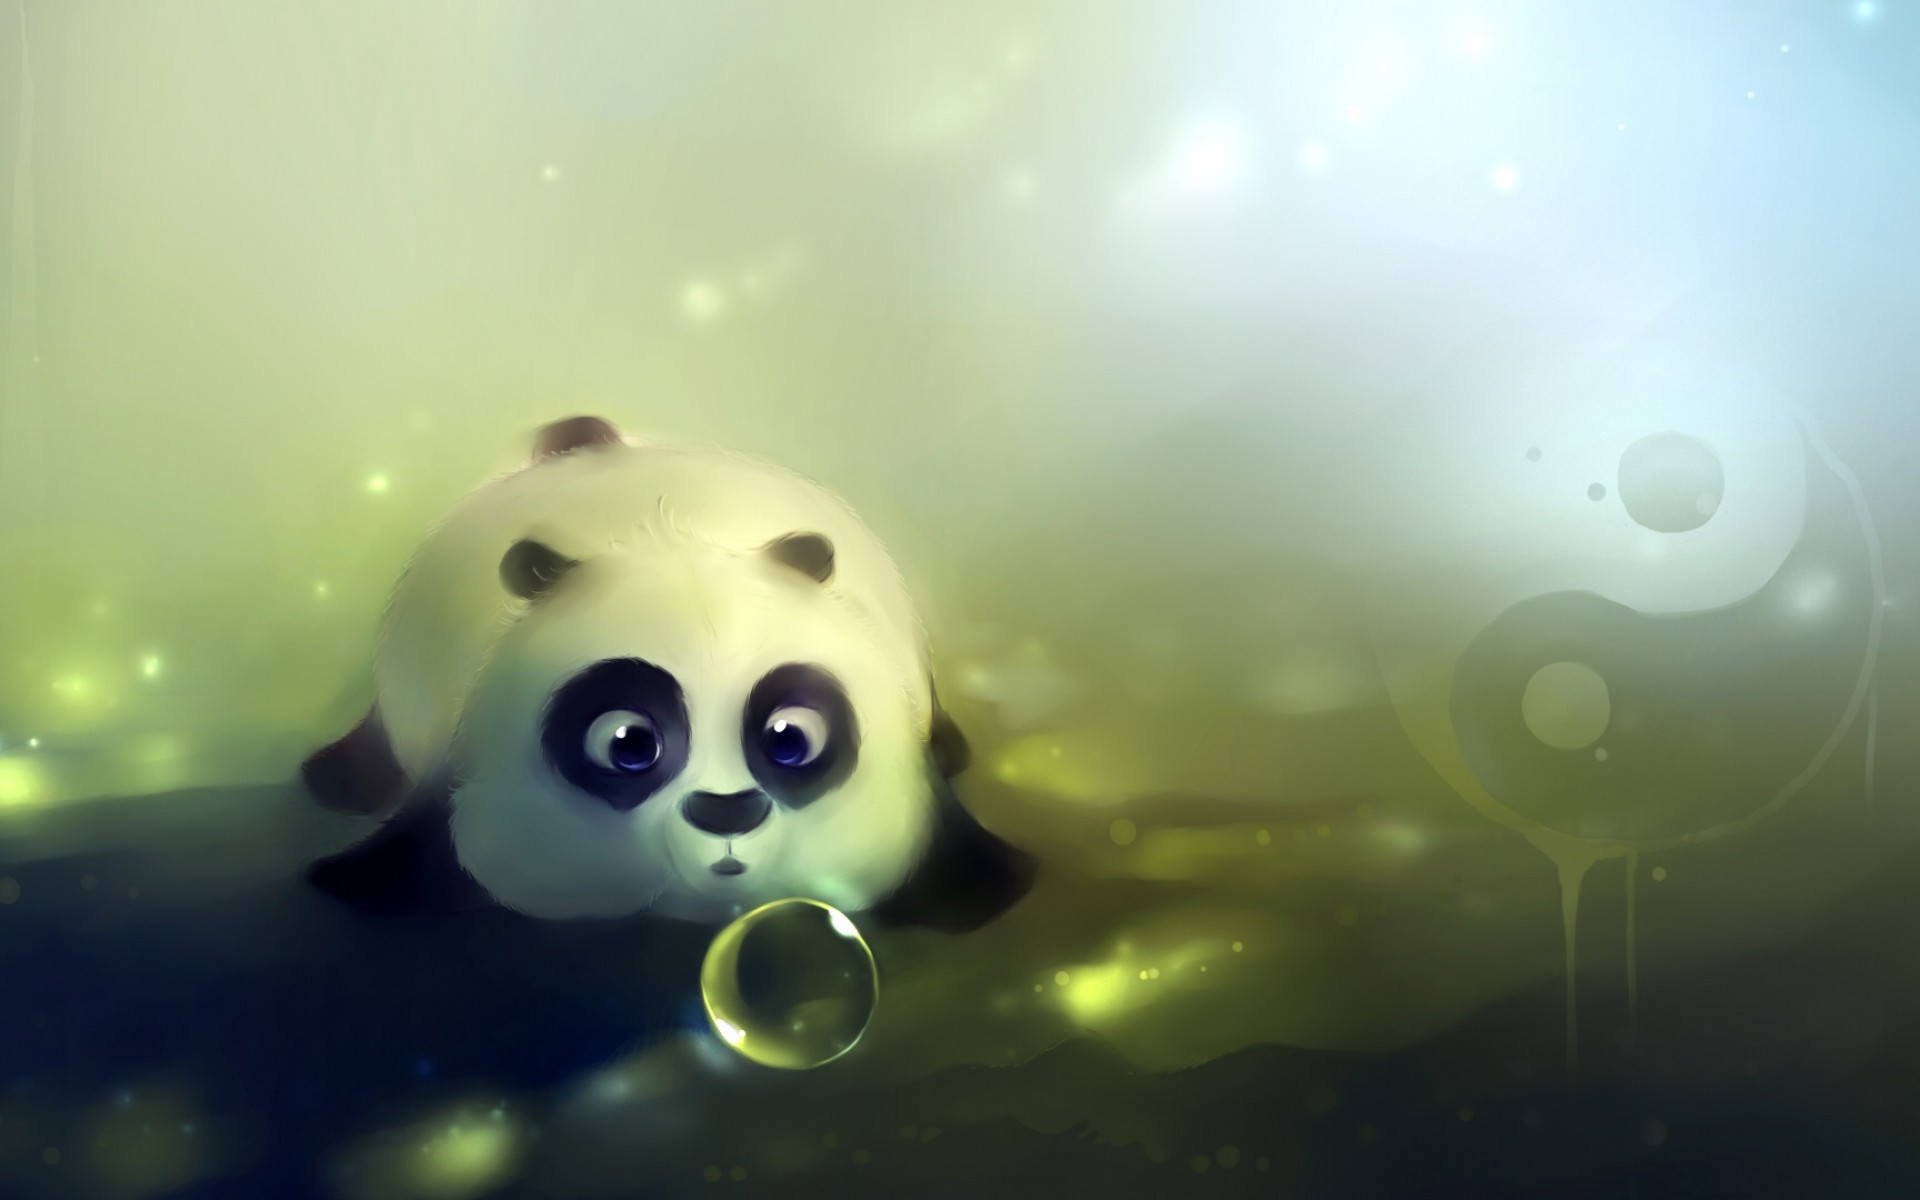 Cute Hd Wallpaper 1920x1200 33493